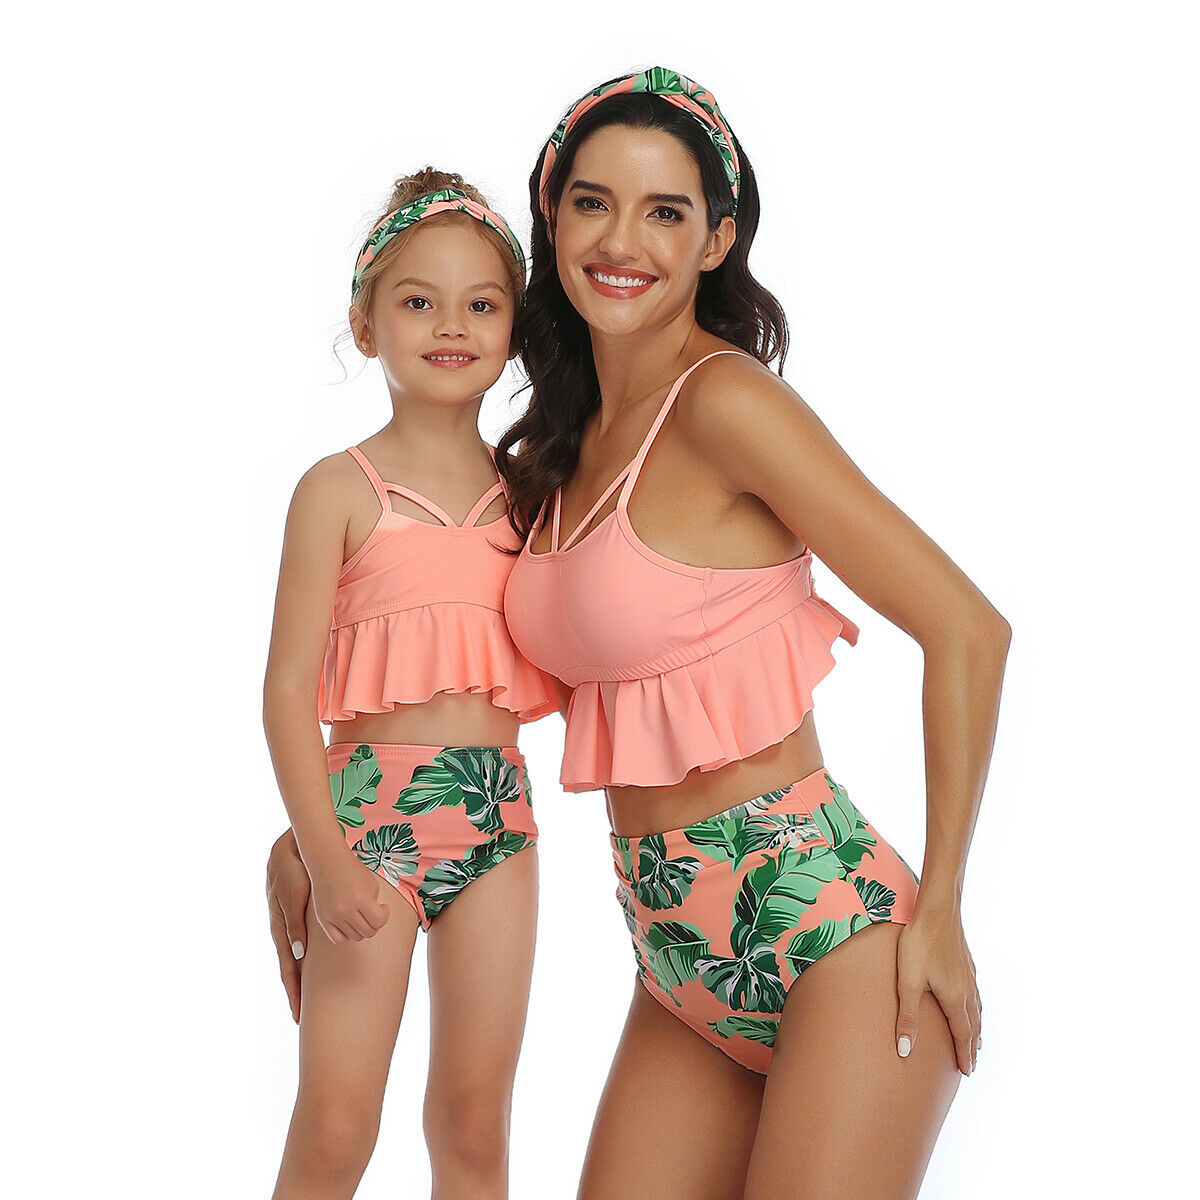 Mommy And Me Swimsuit Mother And Daughter Swimsuit Swimwear Bikini 2020 Summer Family Matching Outfits Swimsuit High Waist